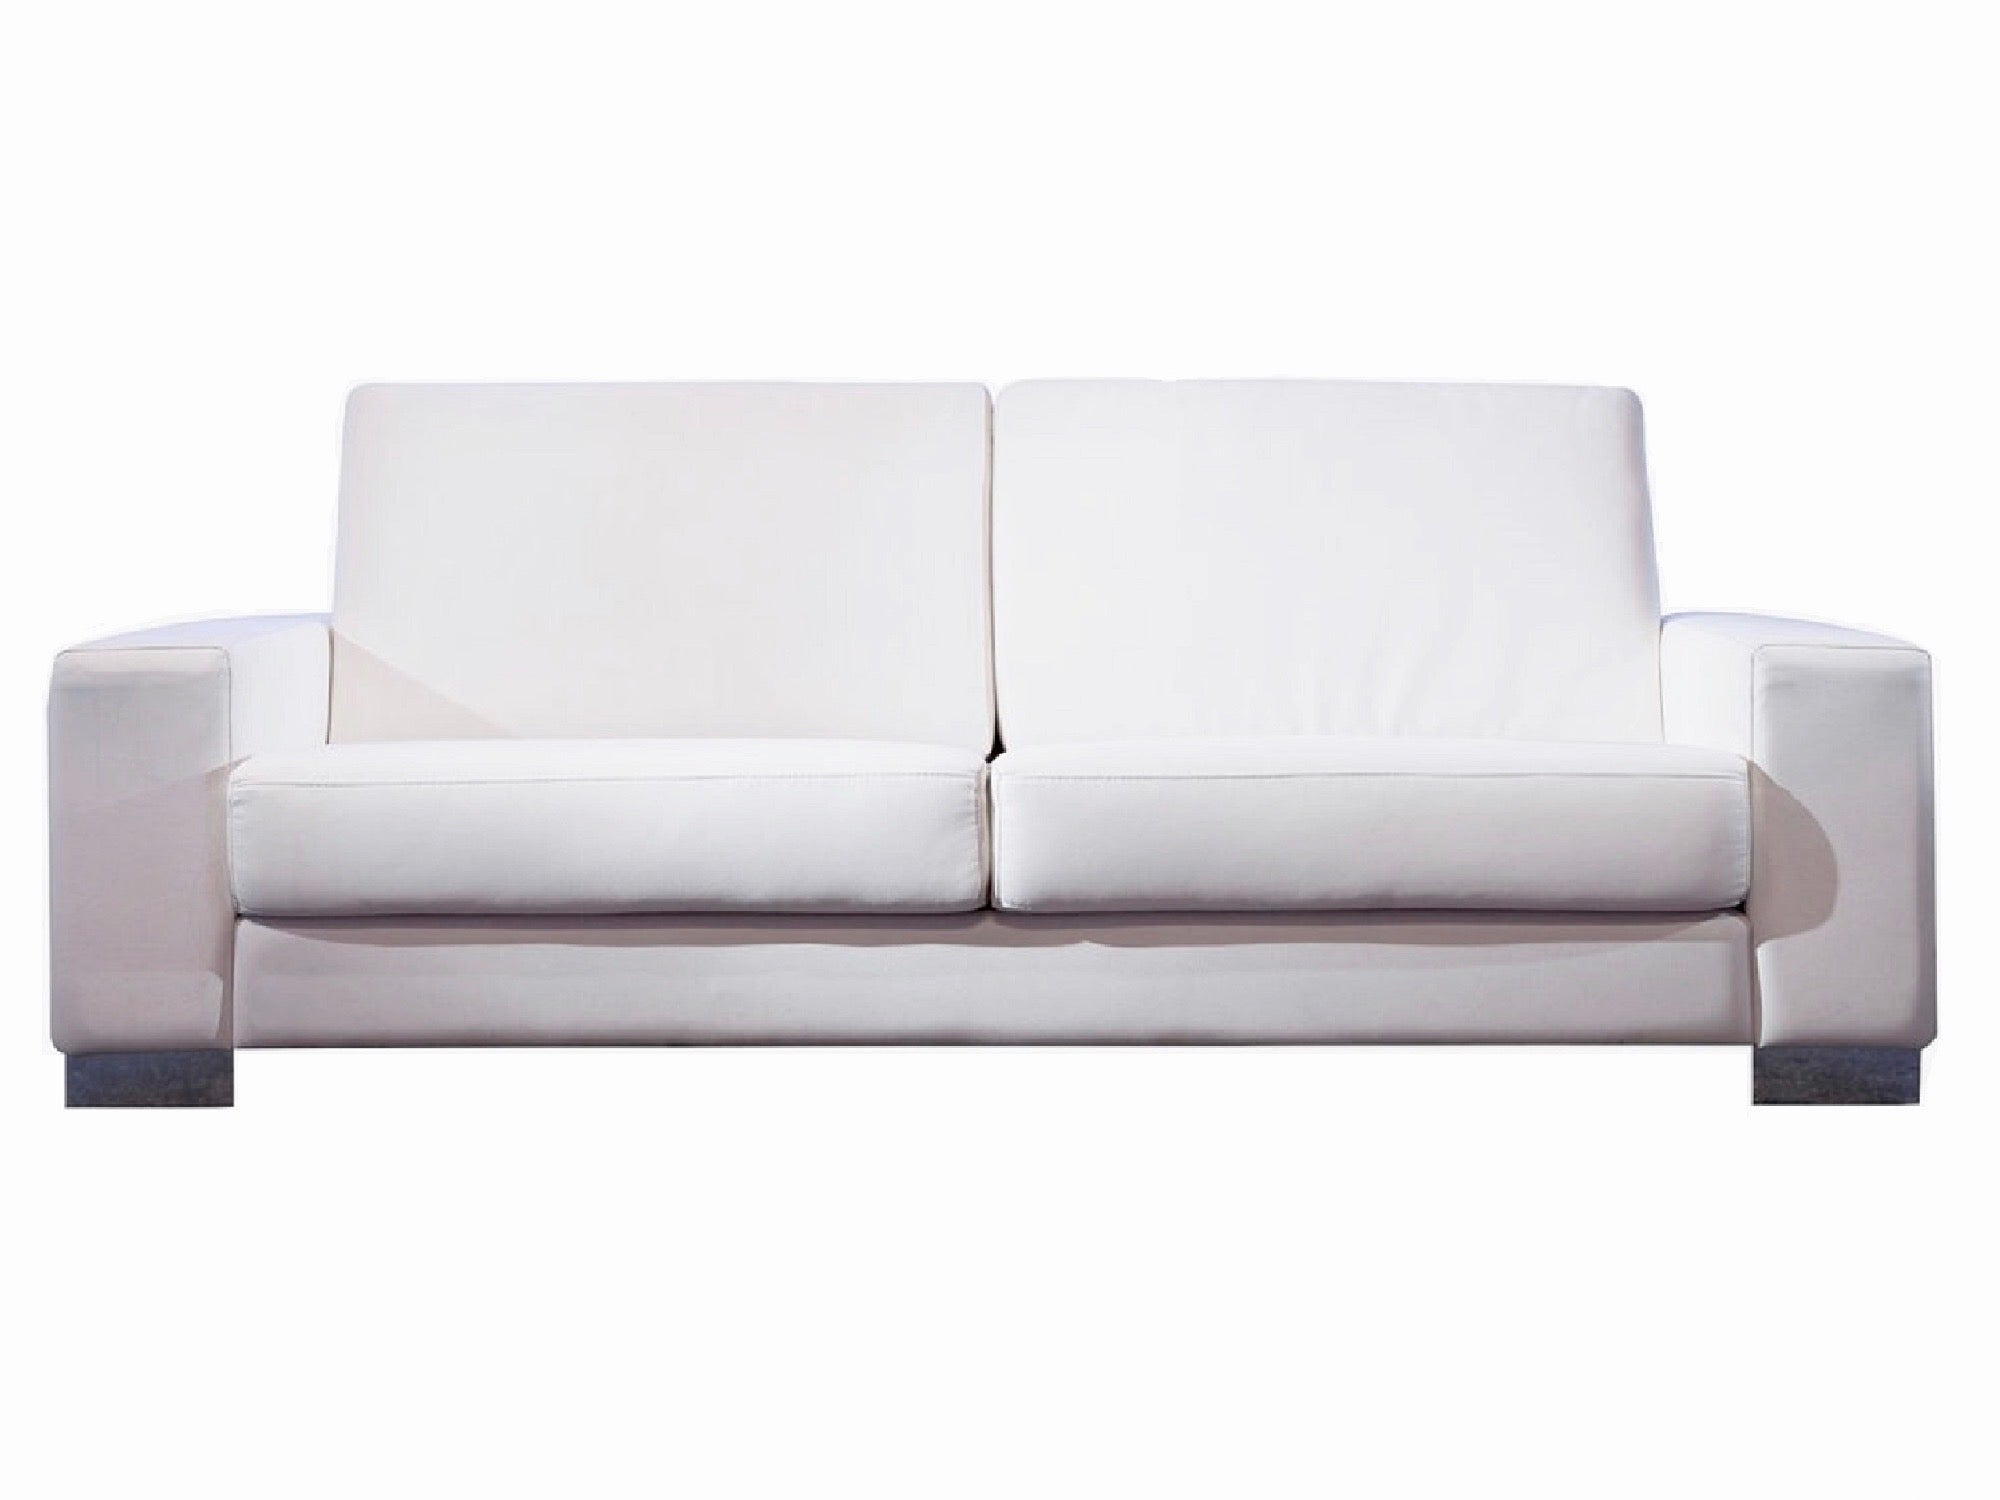 PEACHTREE SOFA - WHITE